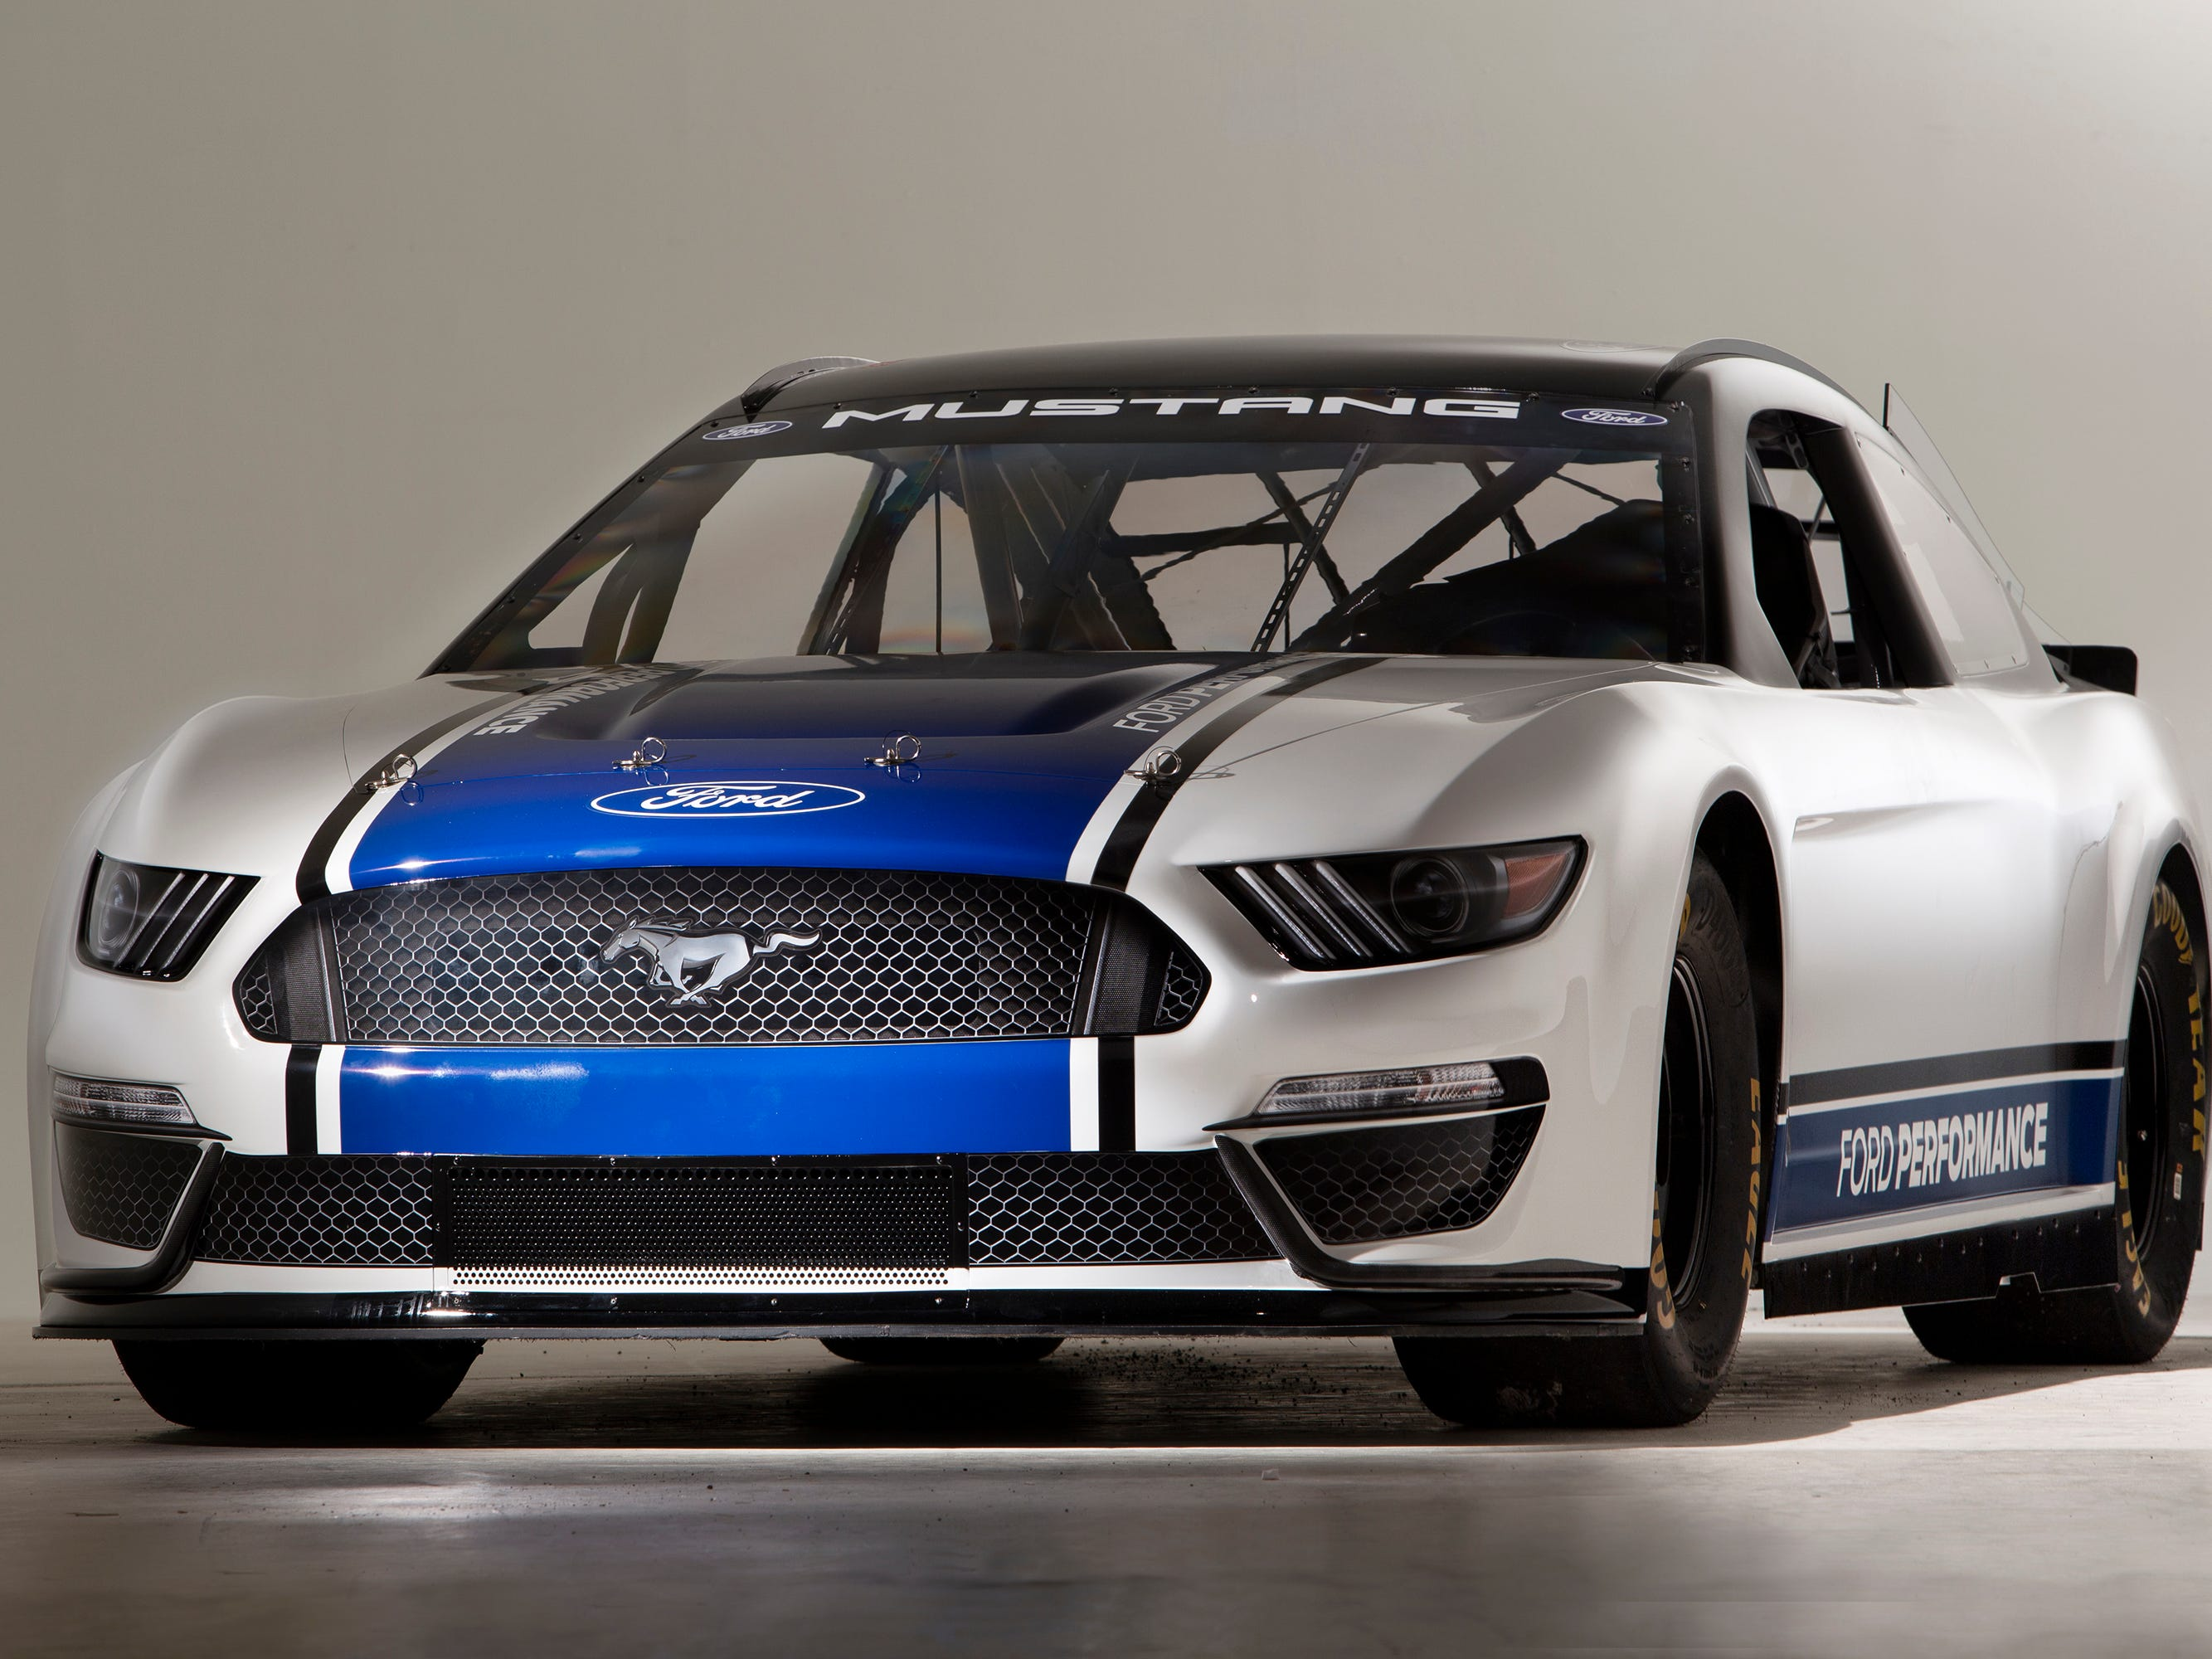 """Hau Thai-Tang, Ford's executive vice president, Product Development and Purchasing, was on hand to help unveil the car. He says, """"After more than a half-century, it feels great to finally let Mustang run in the top echelon of America's most popular stock car racing series."""""""